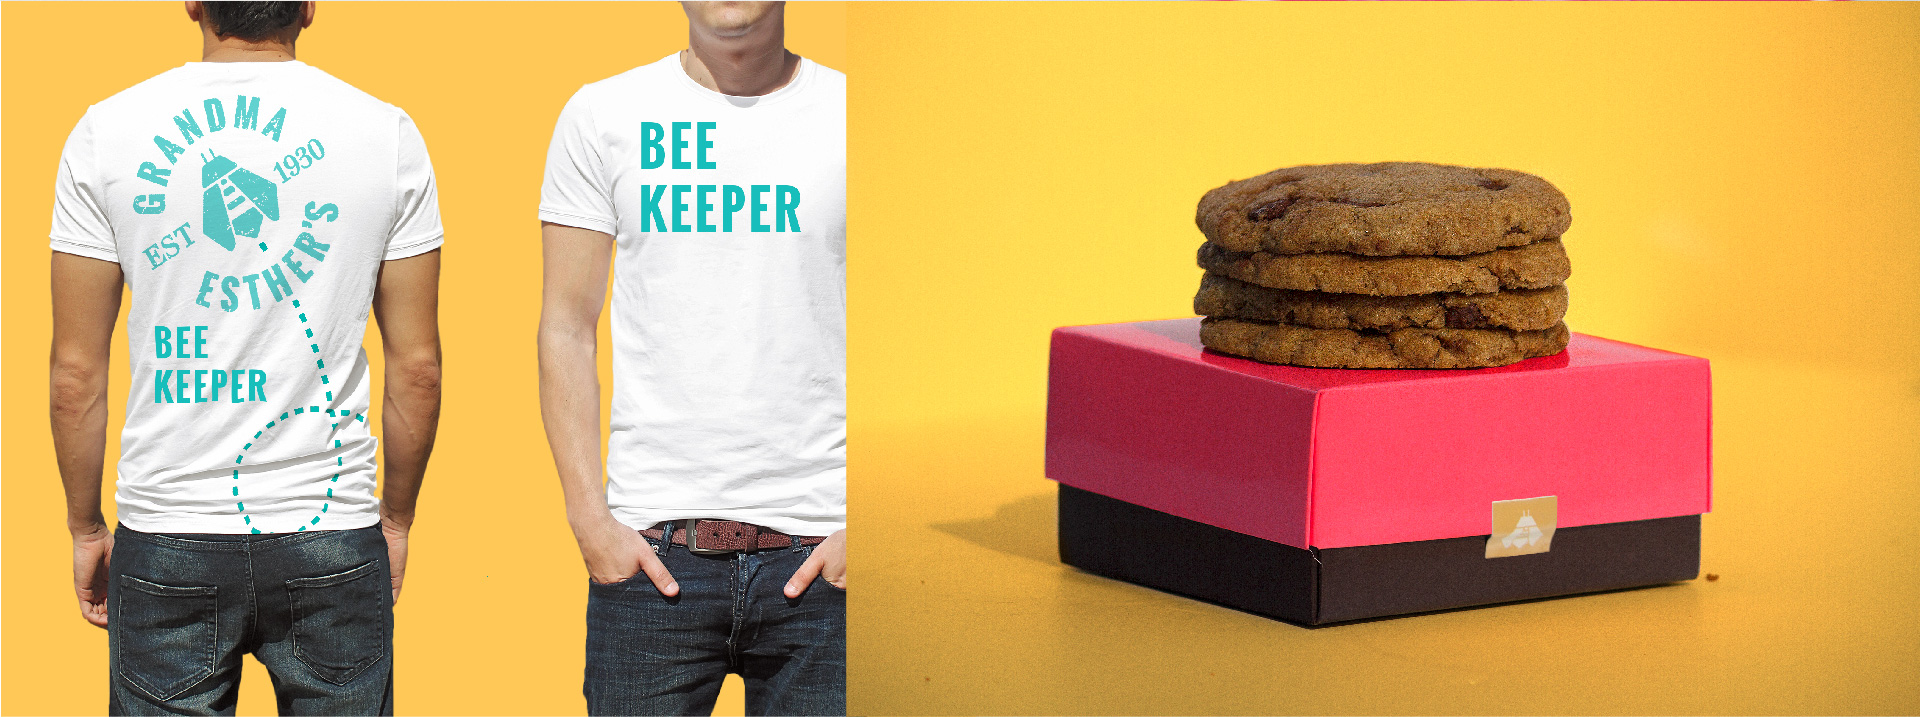 Apparel for Bee Keeper Brand advocates and packaging for baked organic products